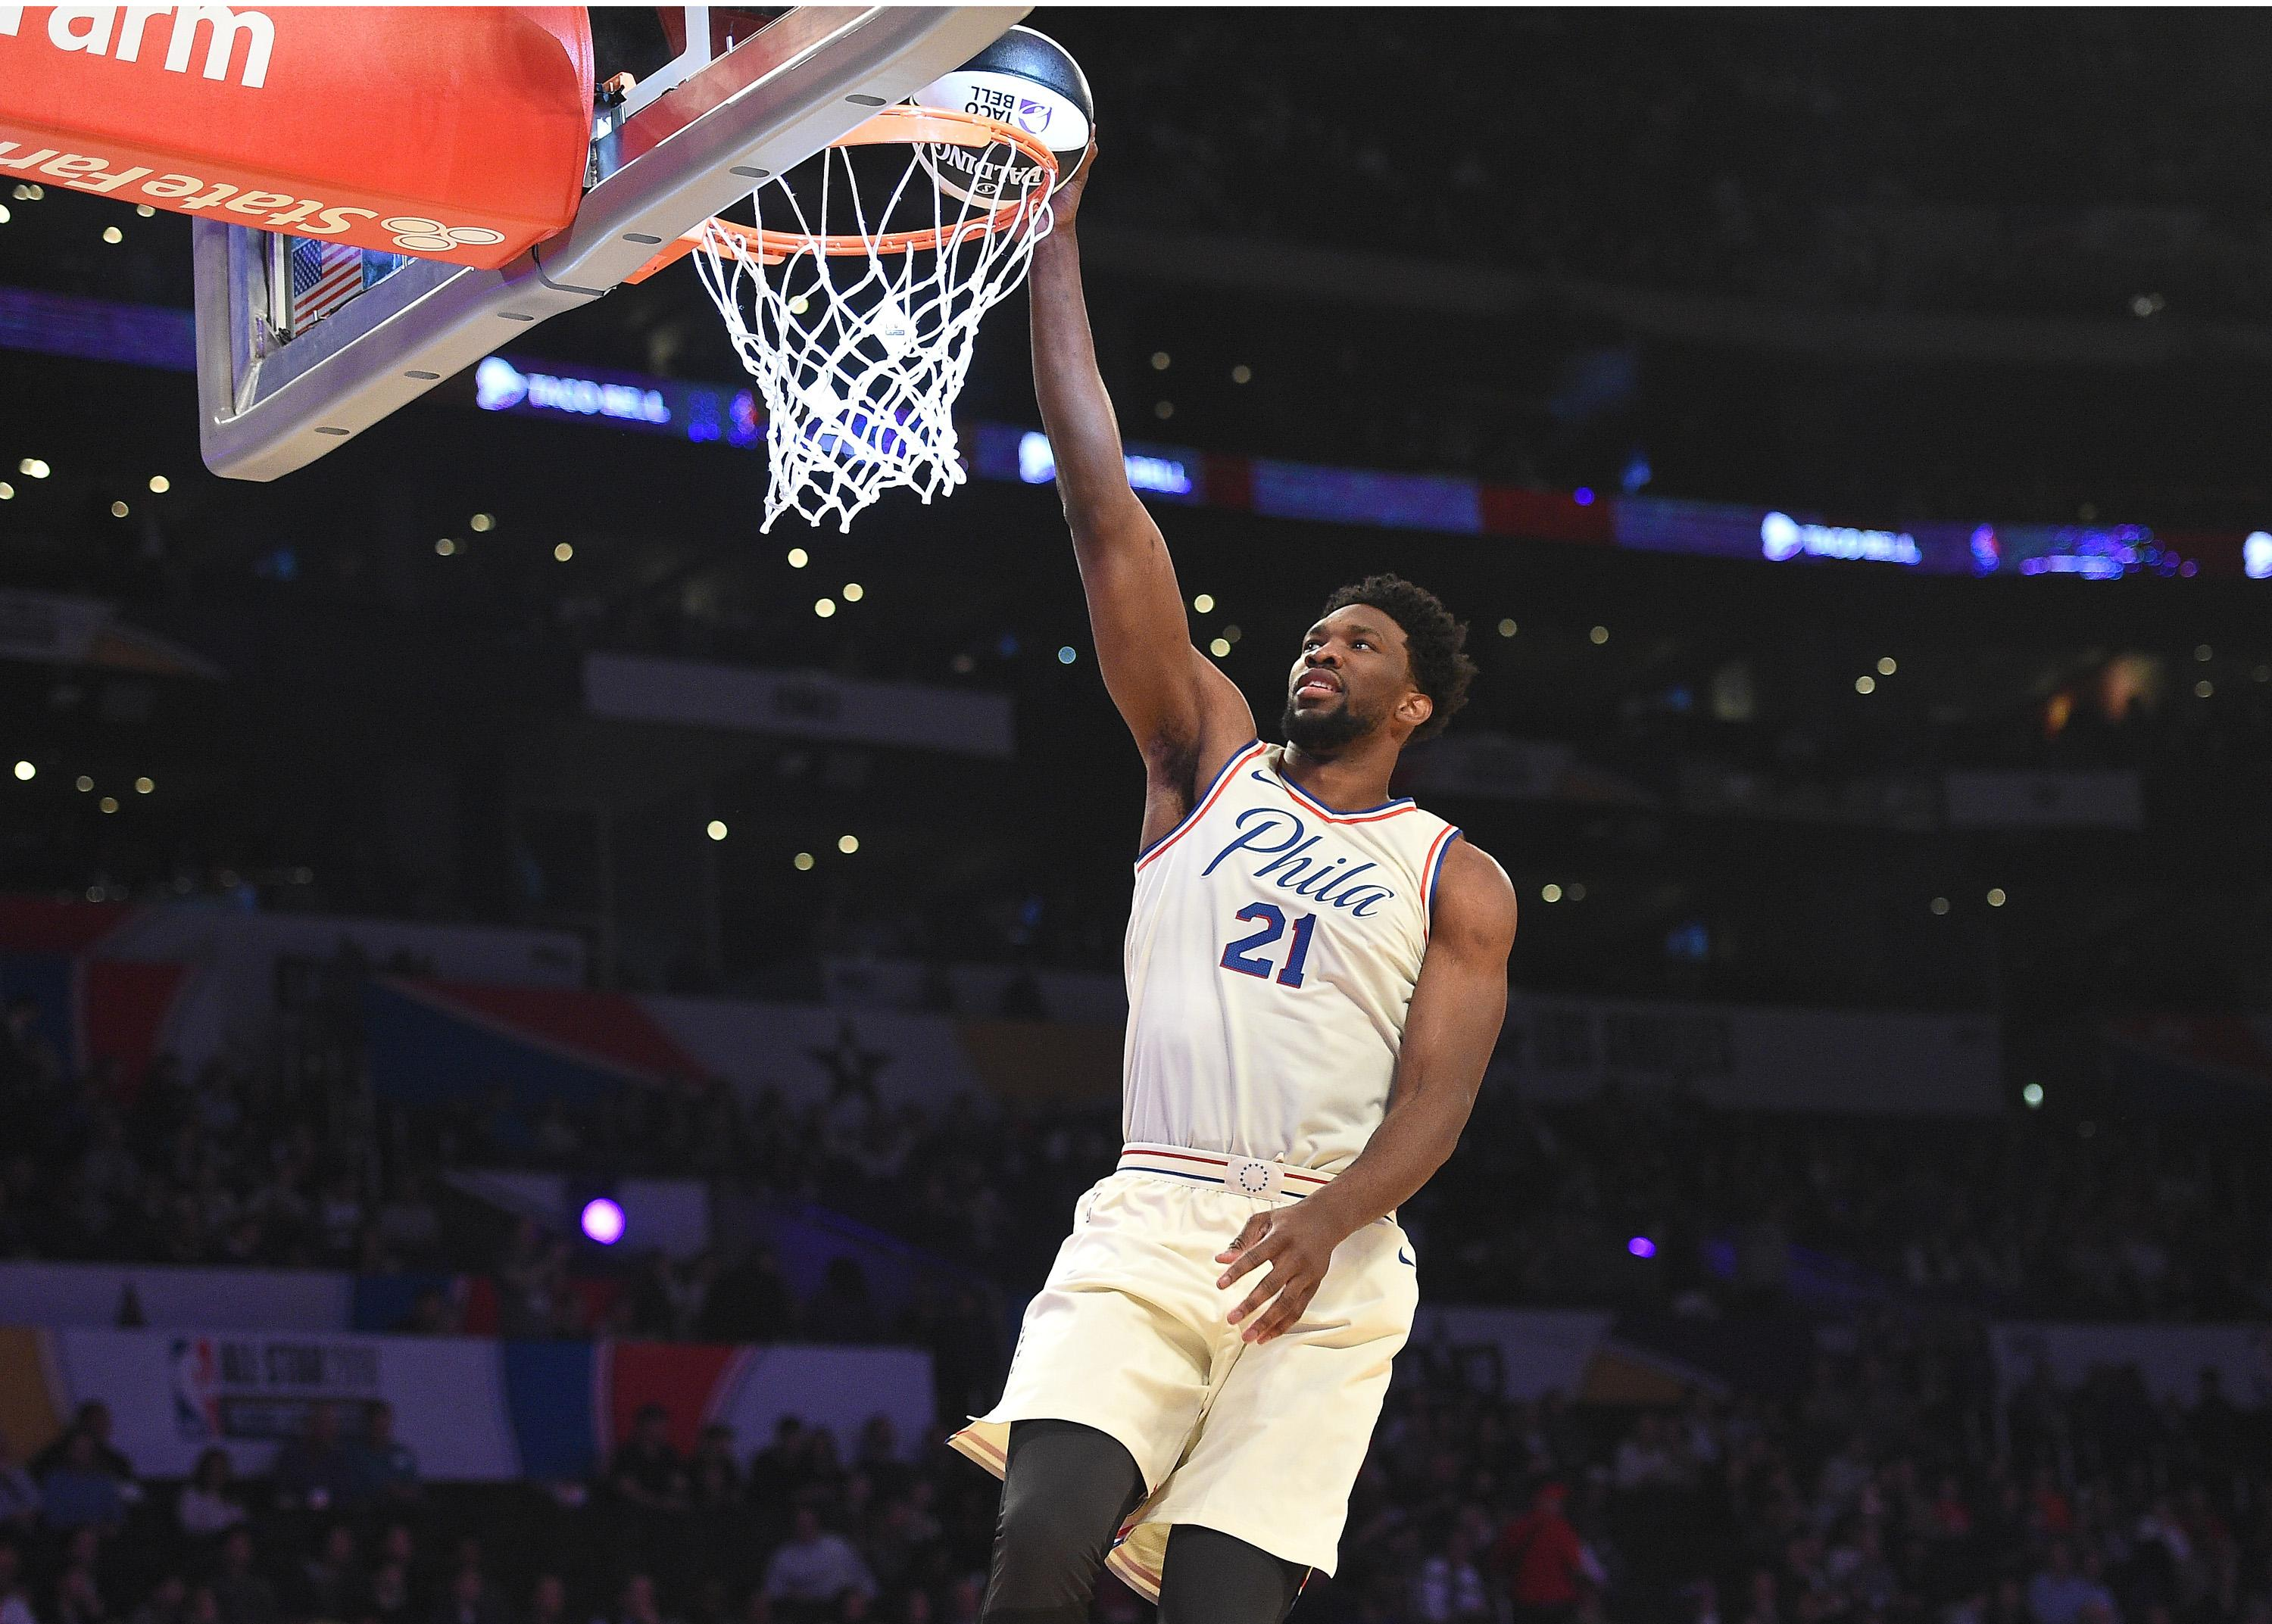 Joel Embiid impresses in first NBA All-Star appearance